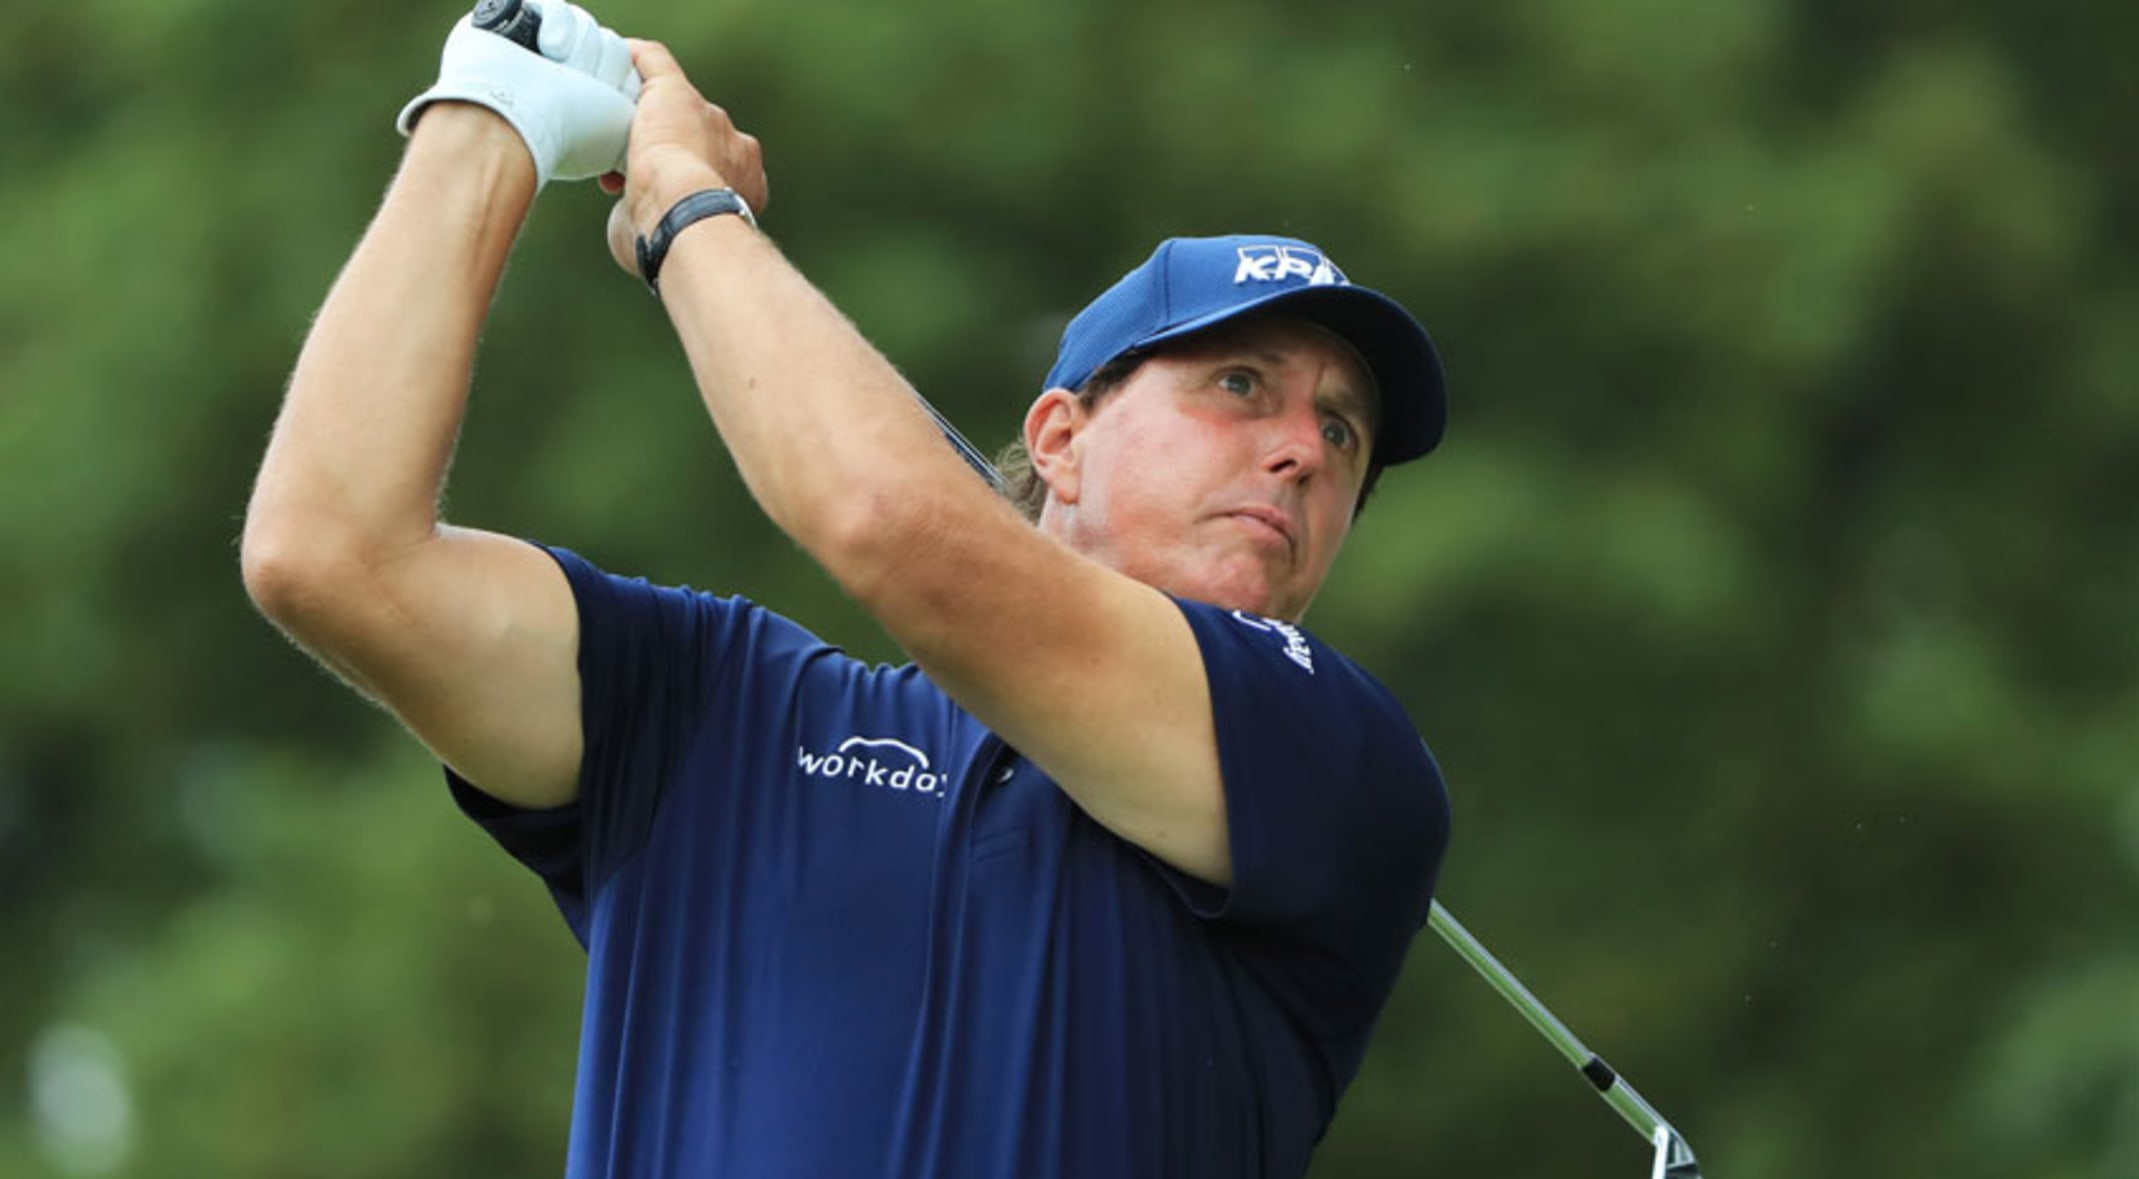 Phil Mickelson nearly missed tee time due to lightning strike at ...